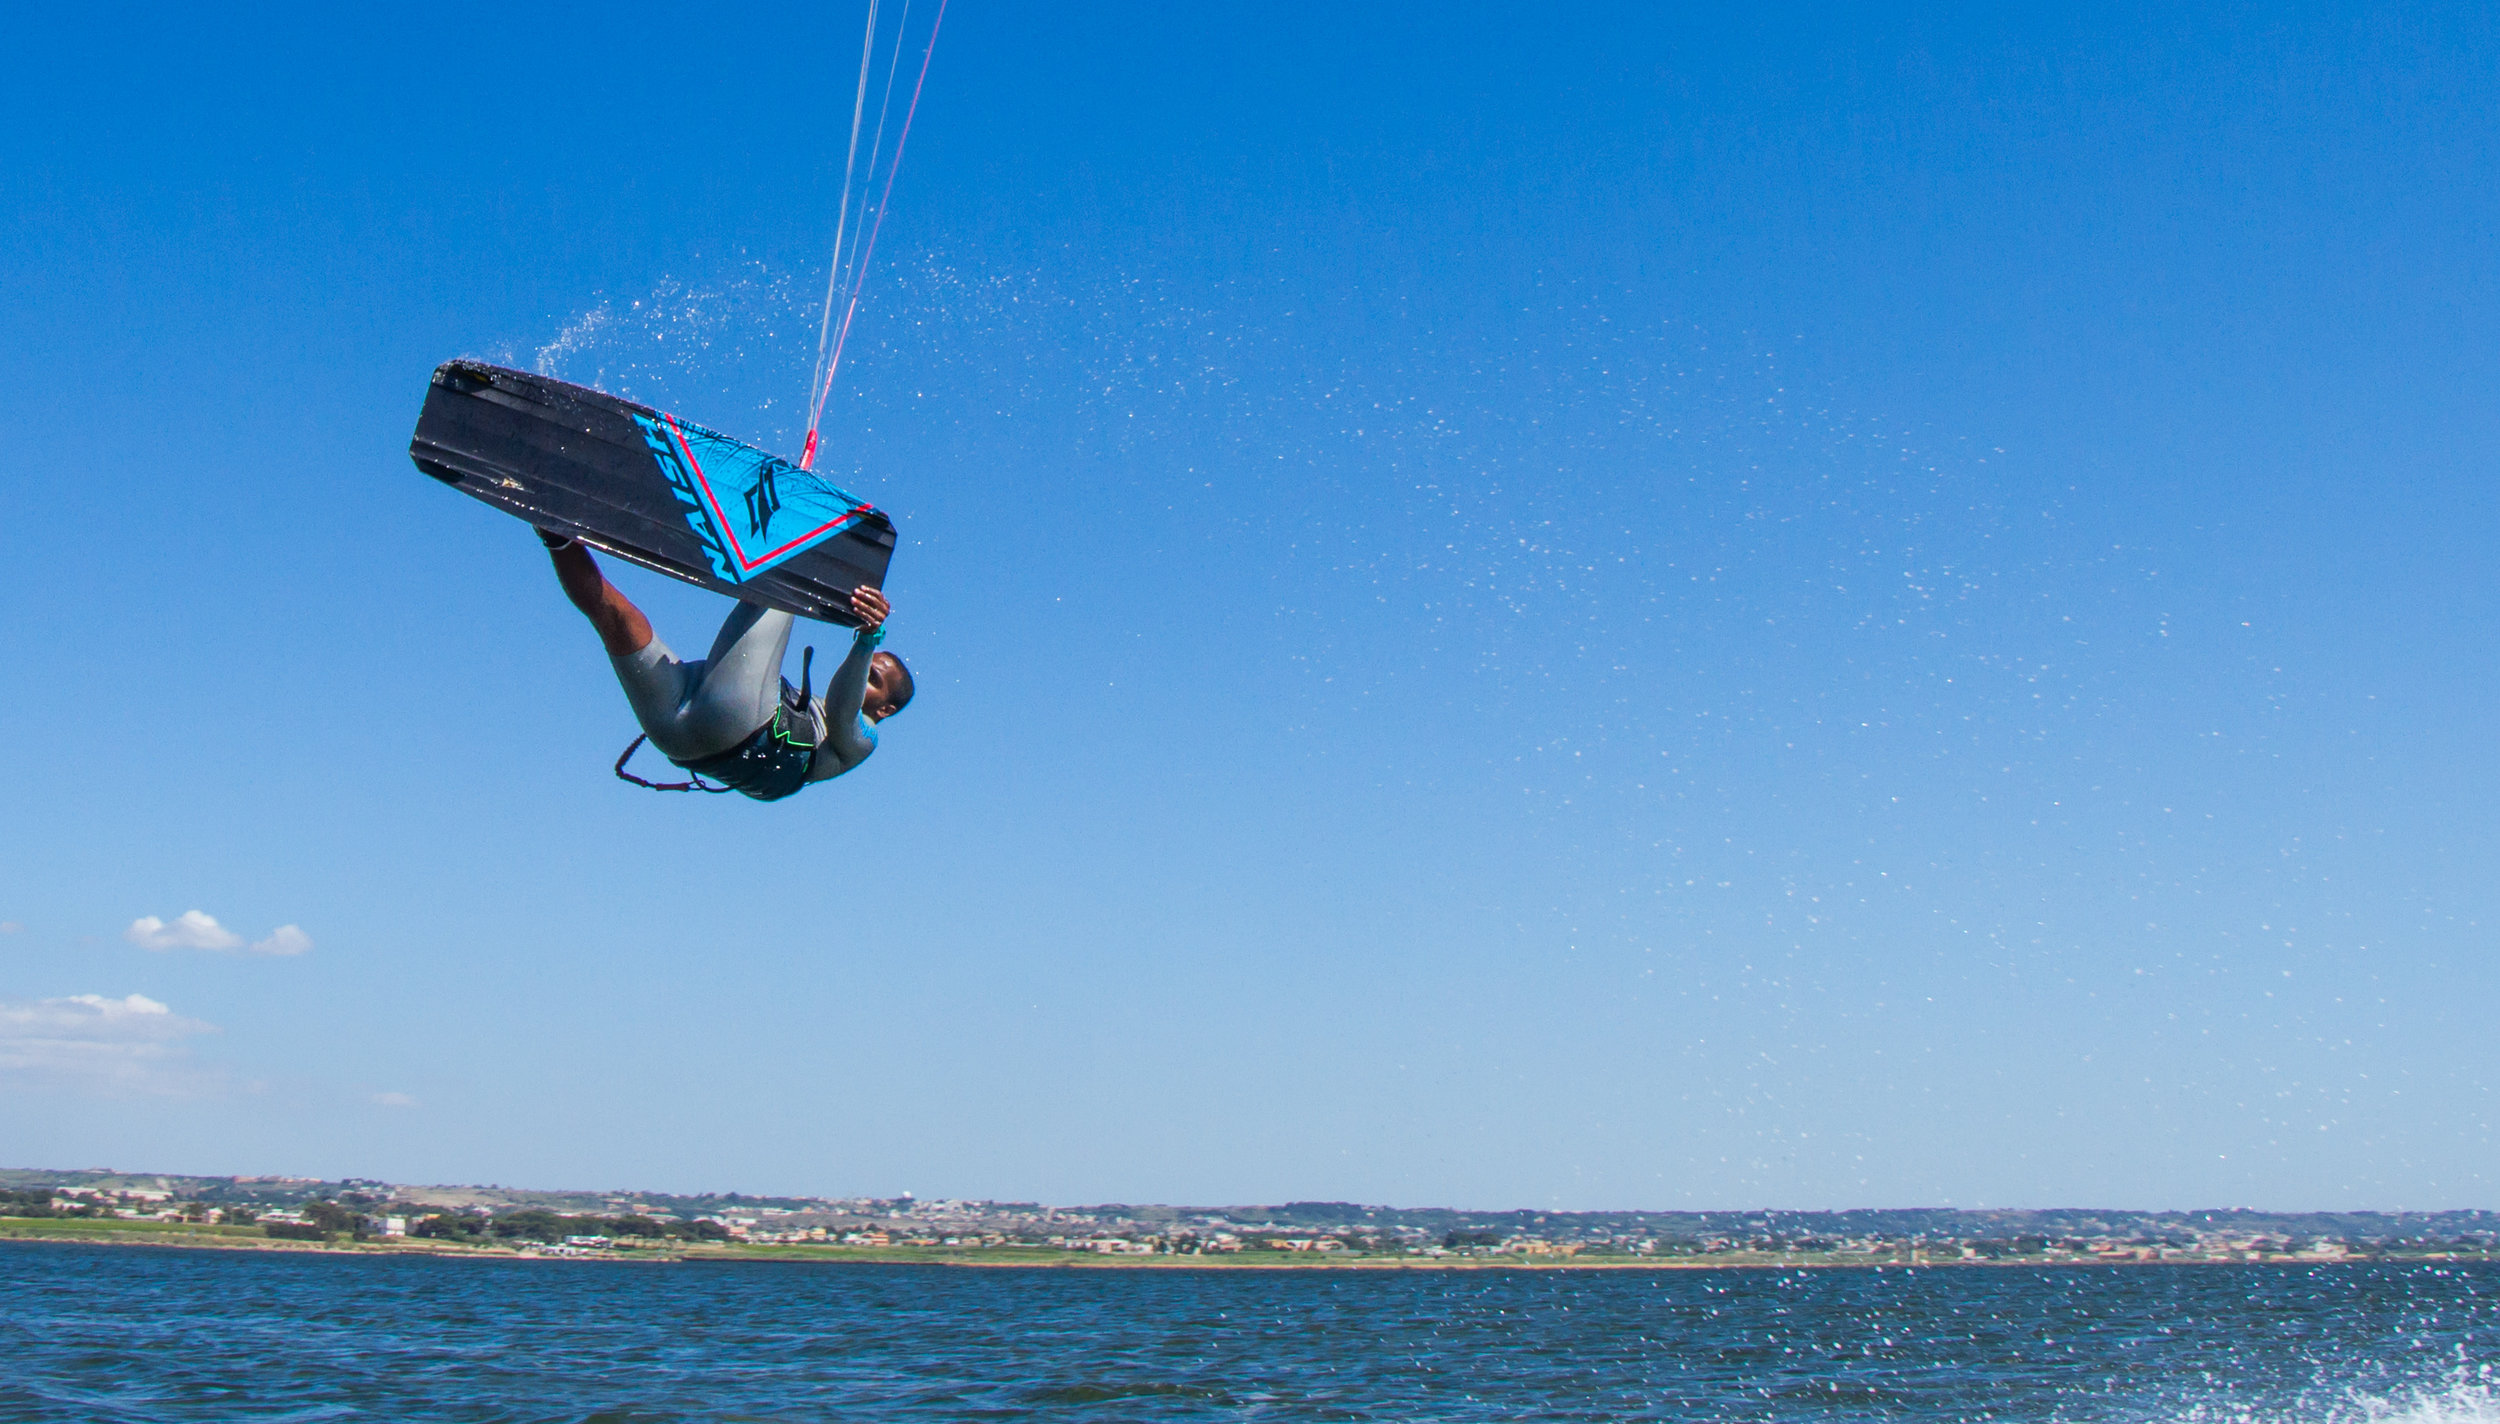 - The most famous spot for kiting in Sicily is called Lo Stagnone: a huge and shallow lagoon that is able to catch basically all the wind directions!